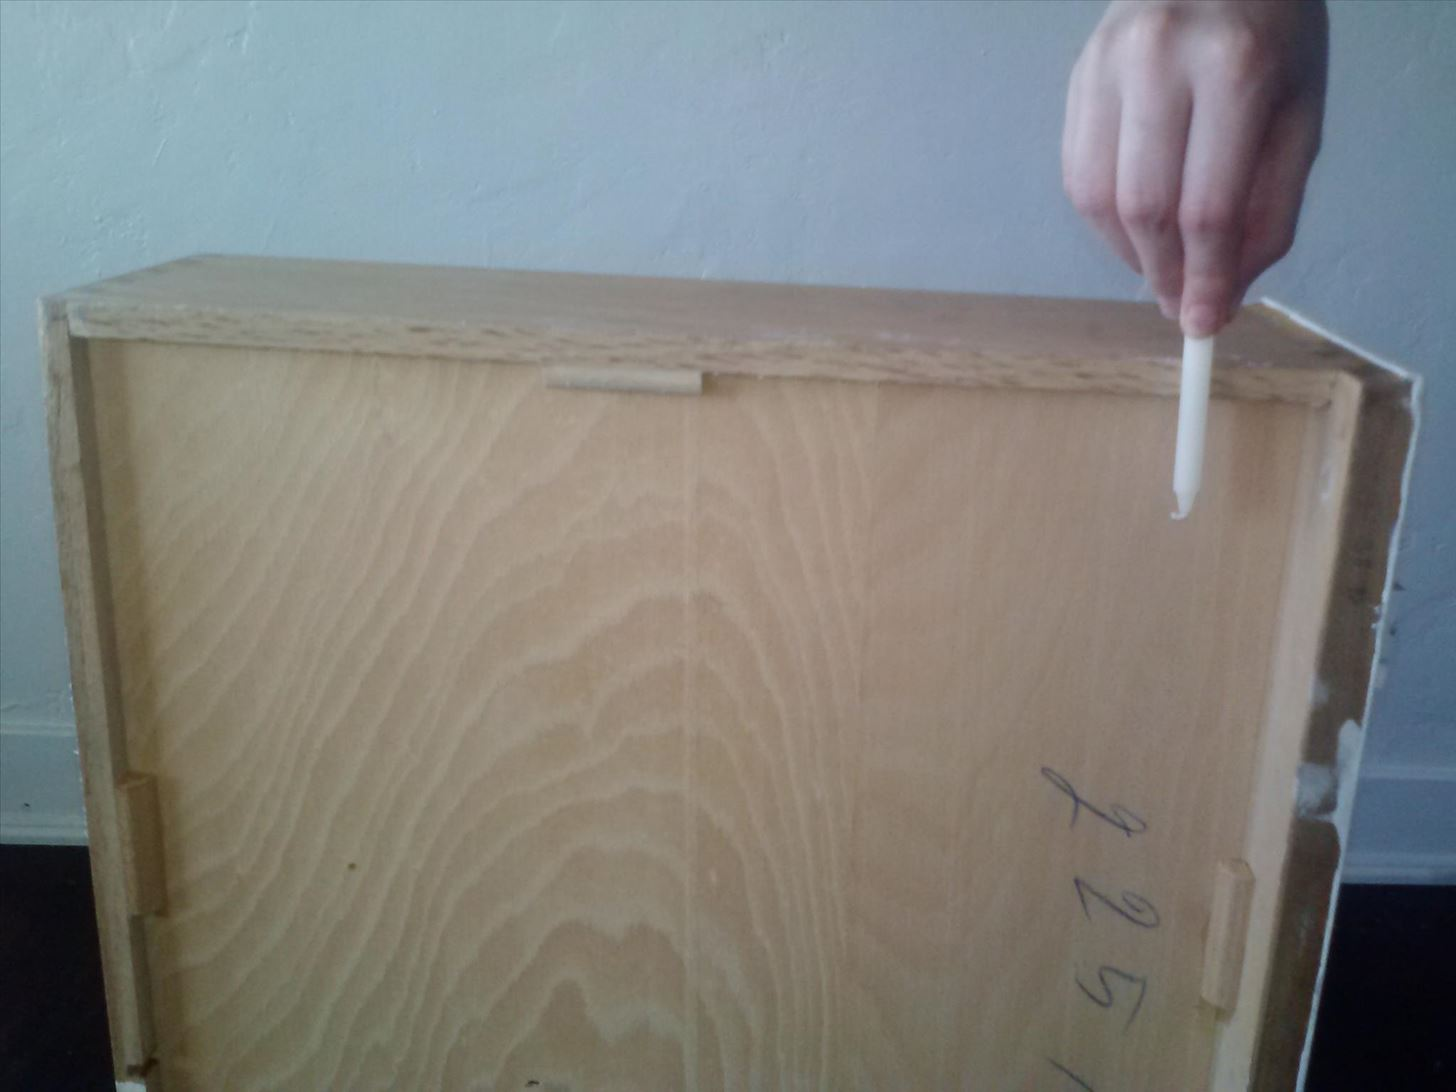 How to Make Sticky or Stubborn Wooden Drawers Slide More Smoothly